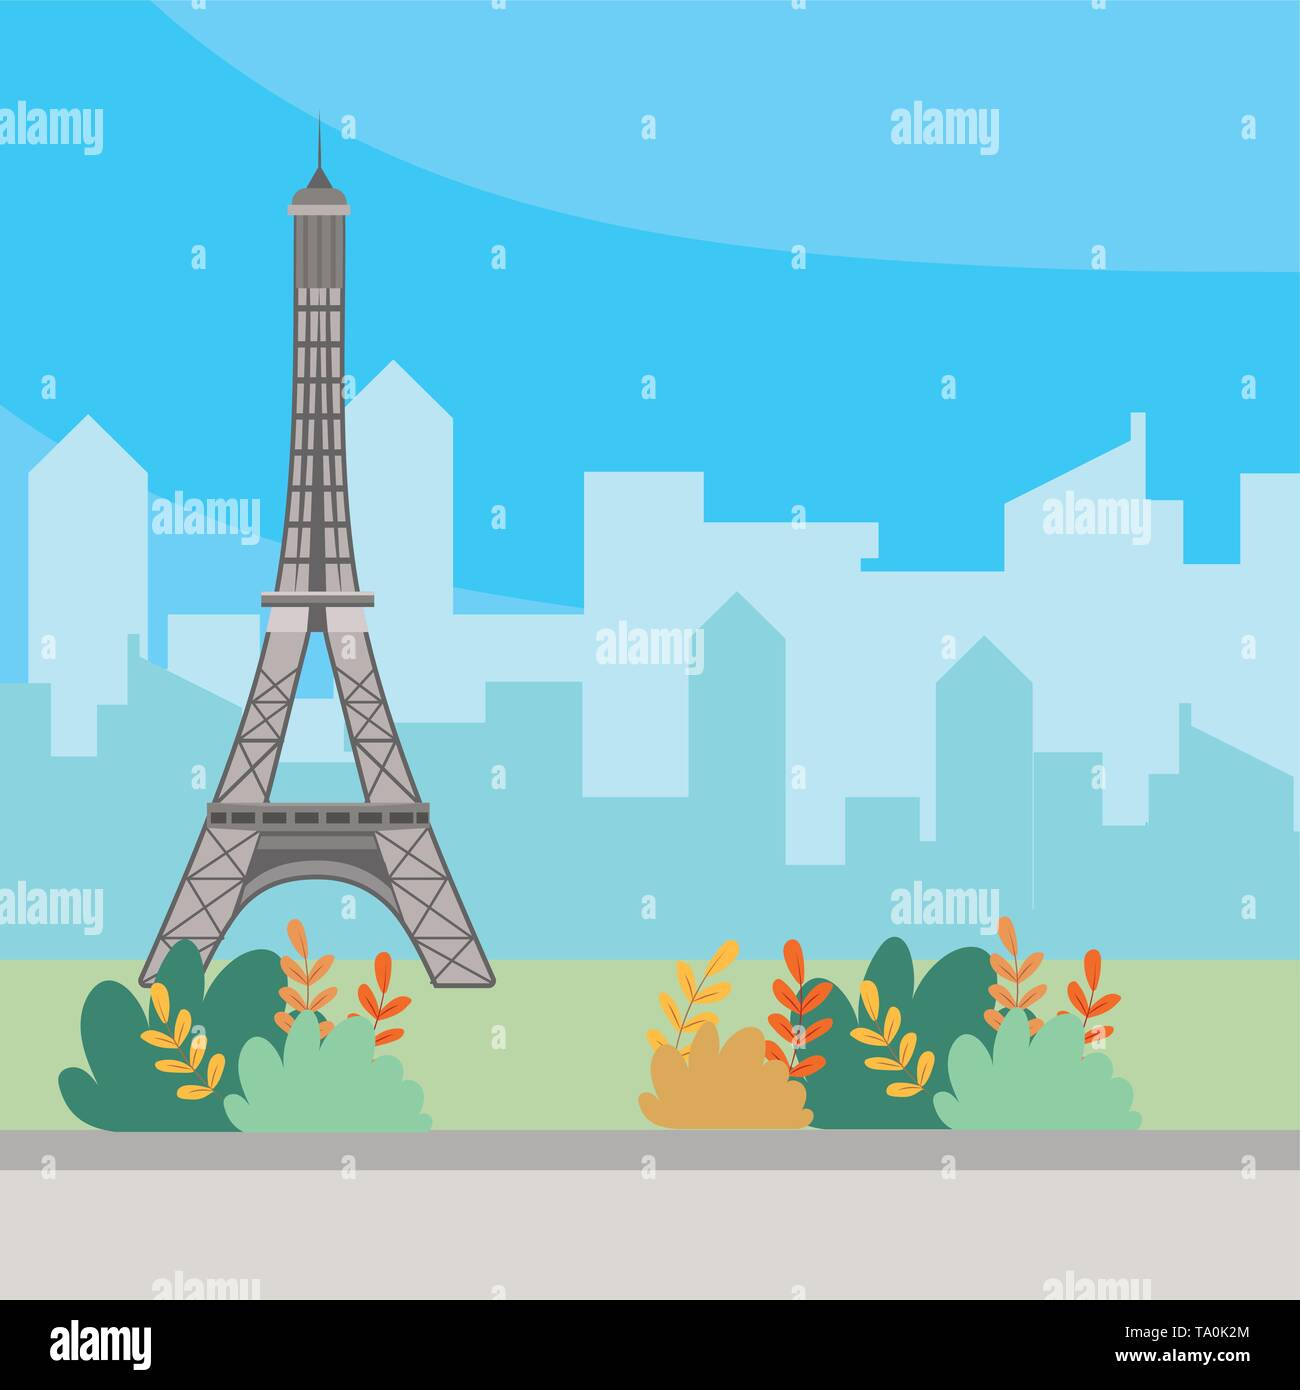 Eiffel tower landmark design, Travel trip vacation tourism journey and tourist theme Vector illustration - Stock Image